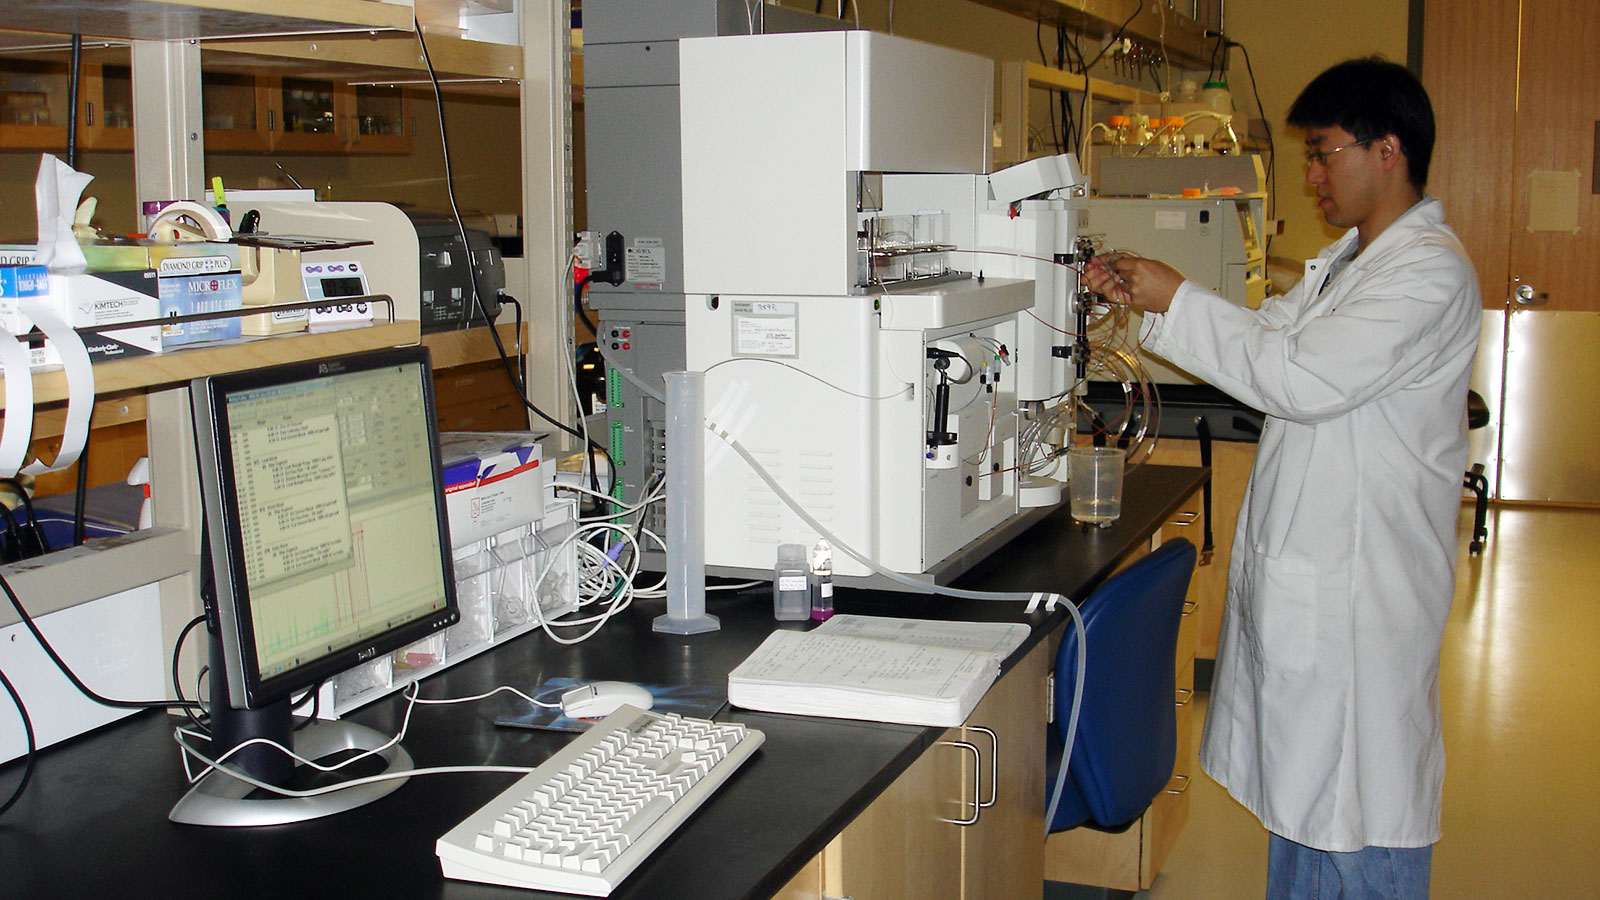 Student Working in a Laboratory